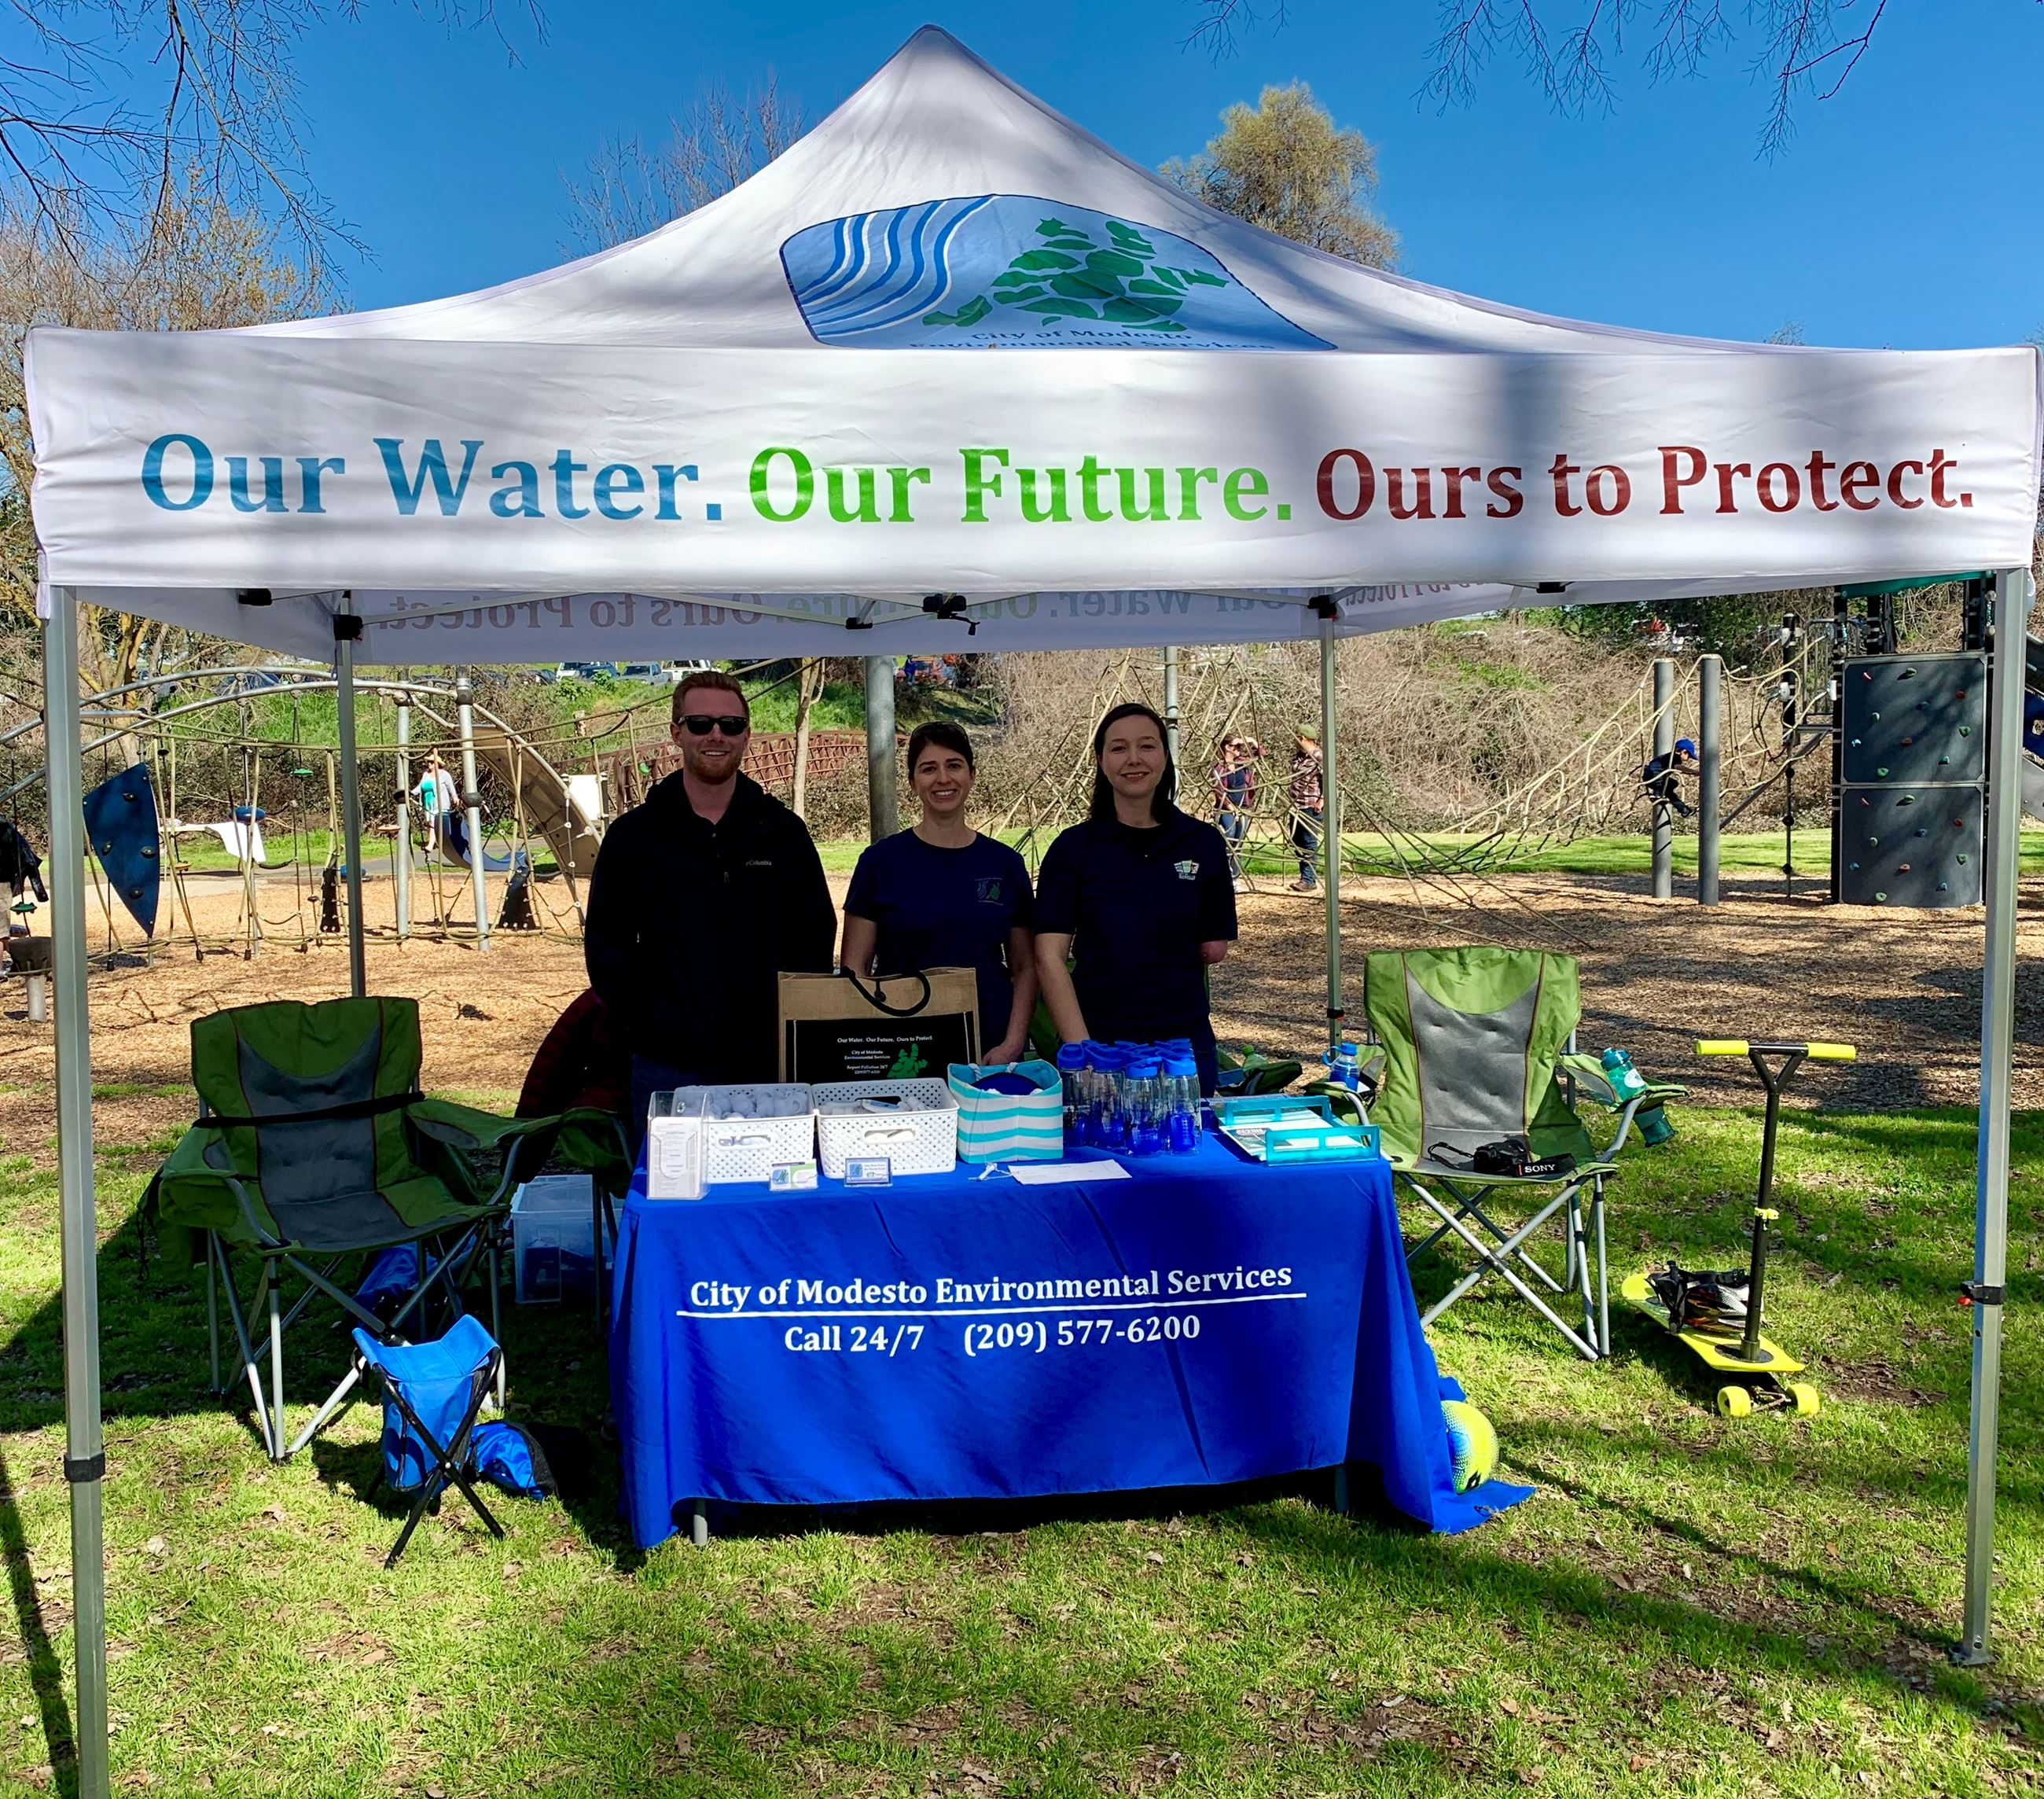 Three City employees stand at a booth display for One Water Modesto